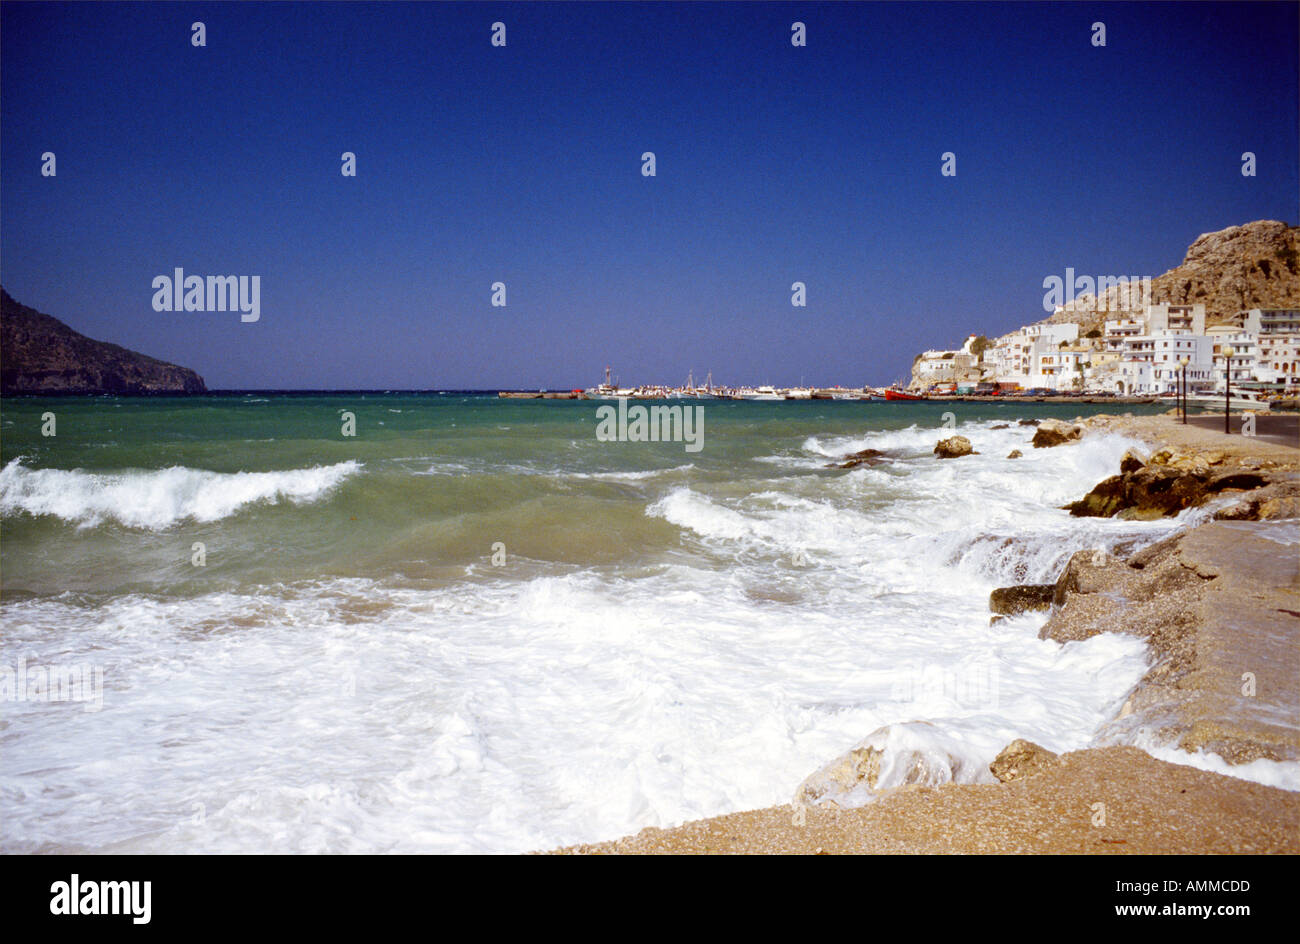 Pigardia Karpathos Island Harbor Greece Europe Stock Photo